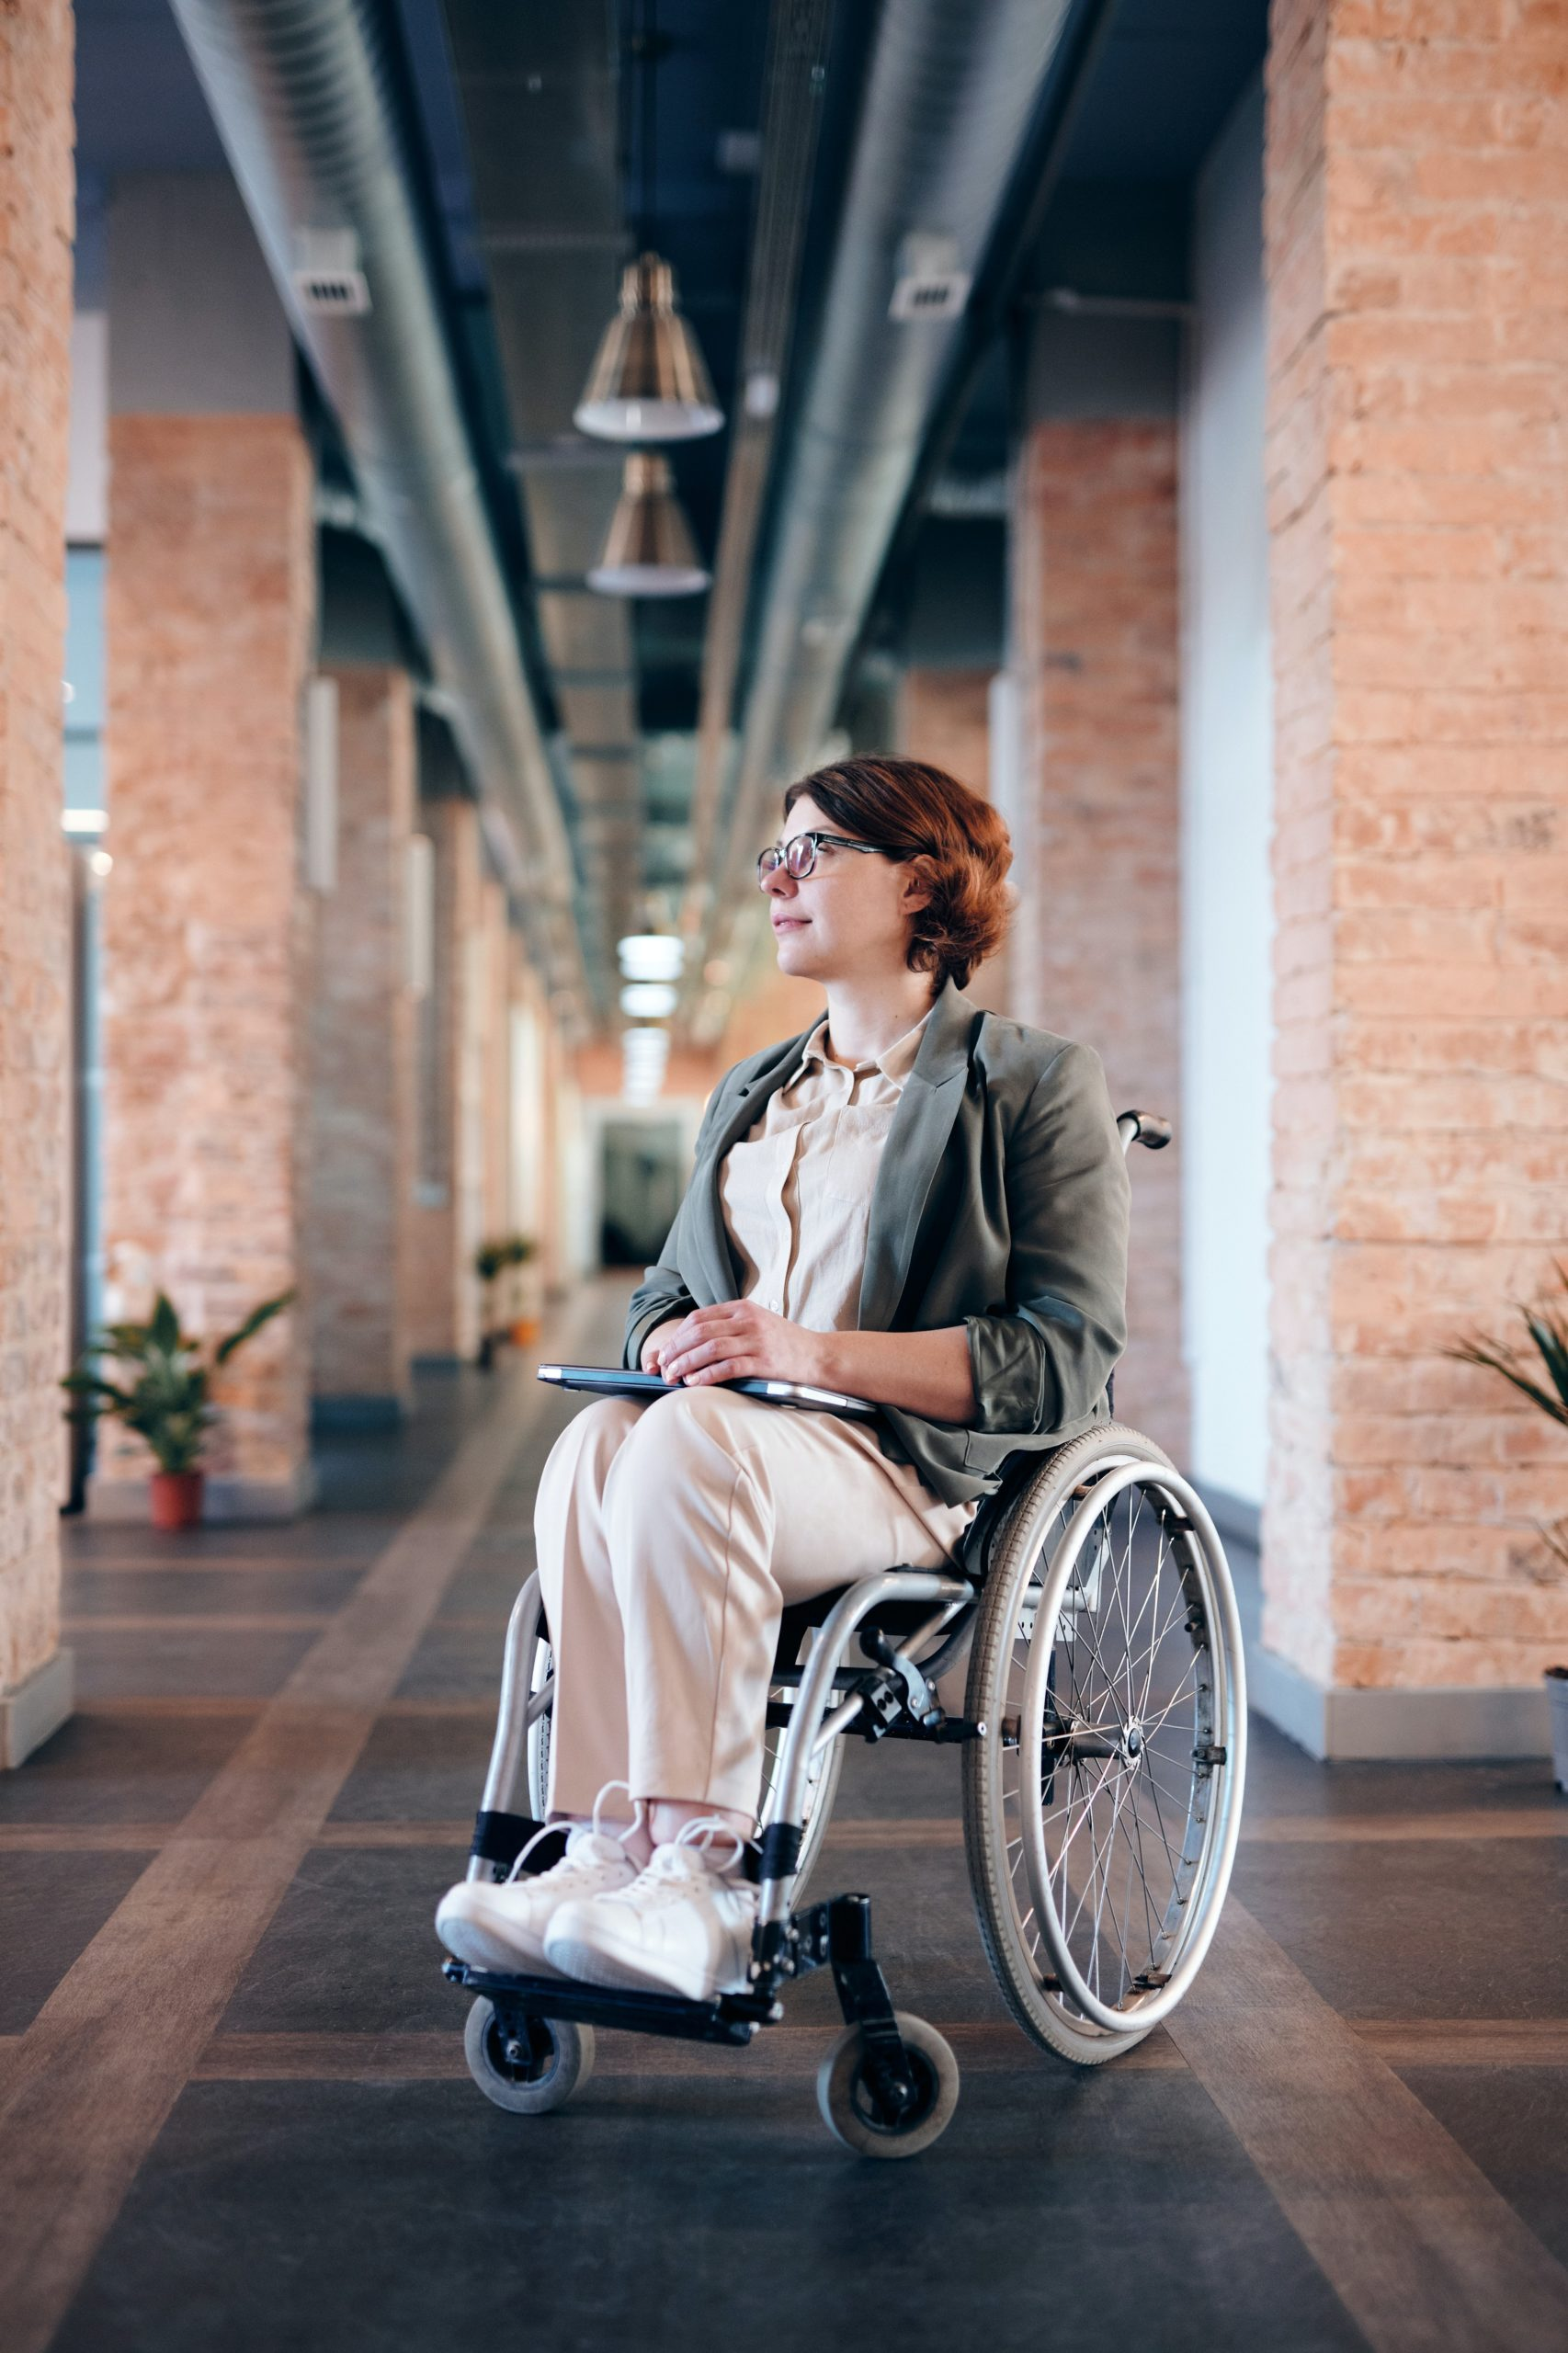 person-first and identity-first language in a wheelchair